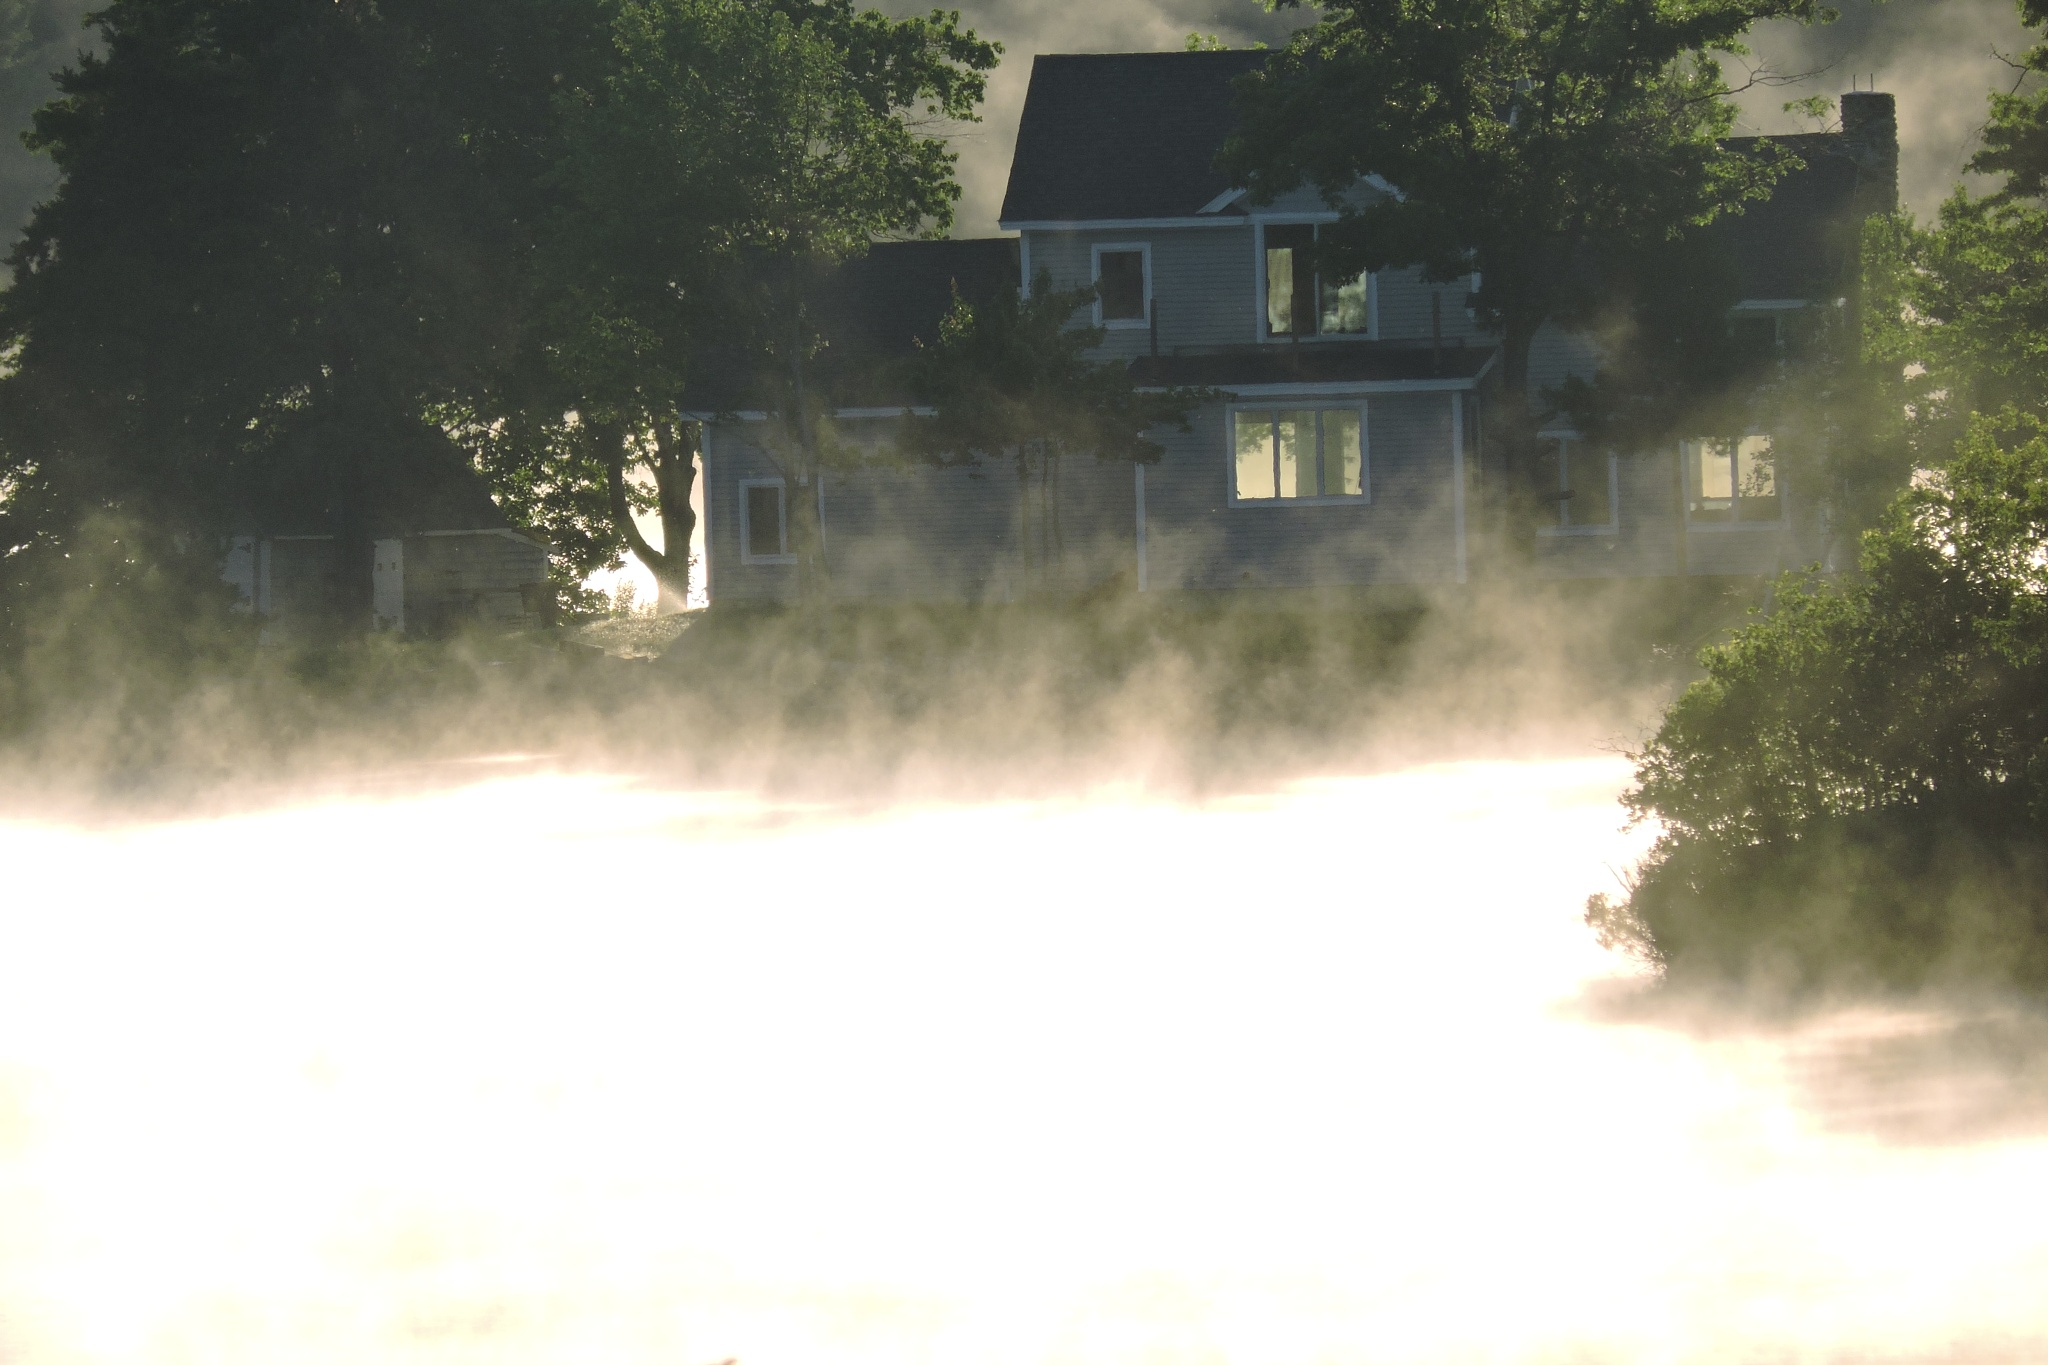 morning mist by G. A. McComas